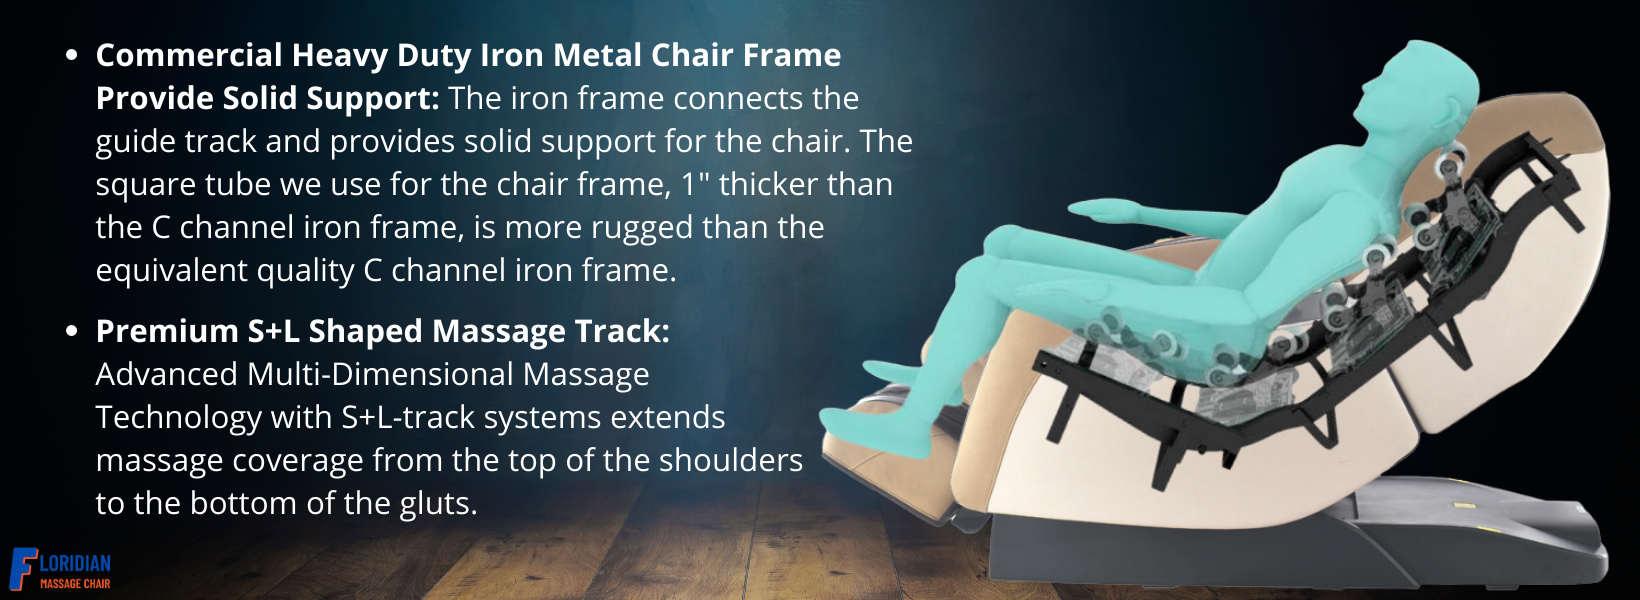 """Commercial Heavy Duty Iron Metal Chair Frame Provide Solid Support: The iron frame connects the guide track and provides solid support for the chair. The square tube we use for the chair frame, 1"""" thicker than the C channel iron frame, is more rugged than the equivalent quality C channel iron frame. Premium S+L Shaped Massage Track: Advanced Multi-Dimensional Massage Technology with S+L-track systems extends massage coverage from the top of the shoulders to the bottom of the gluts."""